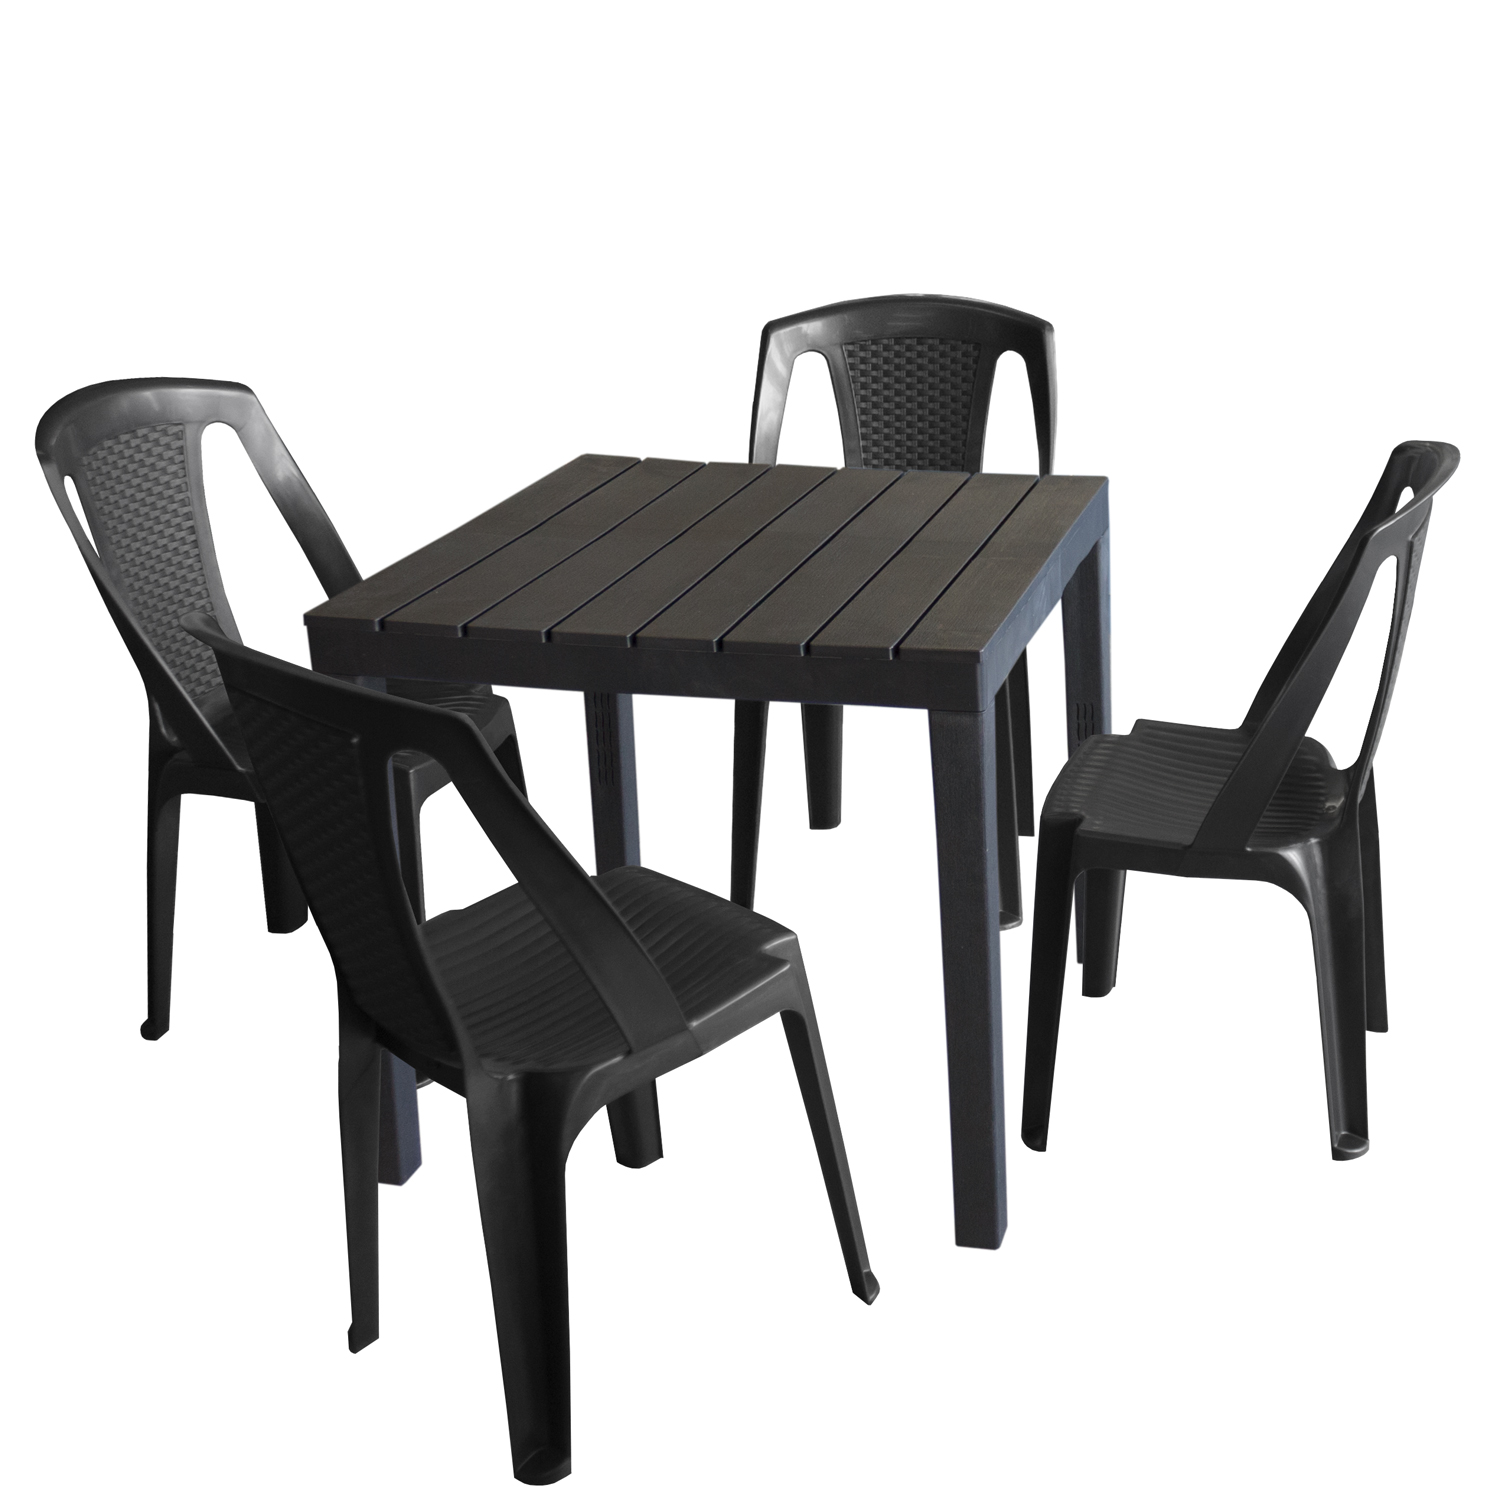 gartenm bel set kunststoff gartentisch 78x78cm 4x stapelstuhl procida anthrazit garten bistro. Black Bedroom Furniture Sets. Home Design Ideas